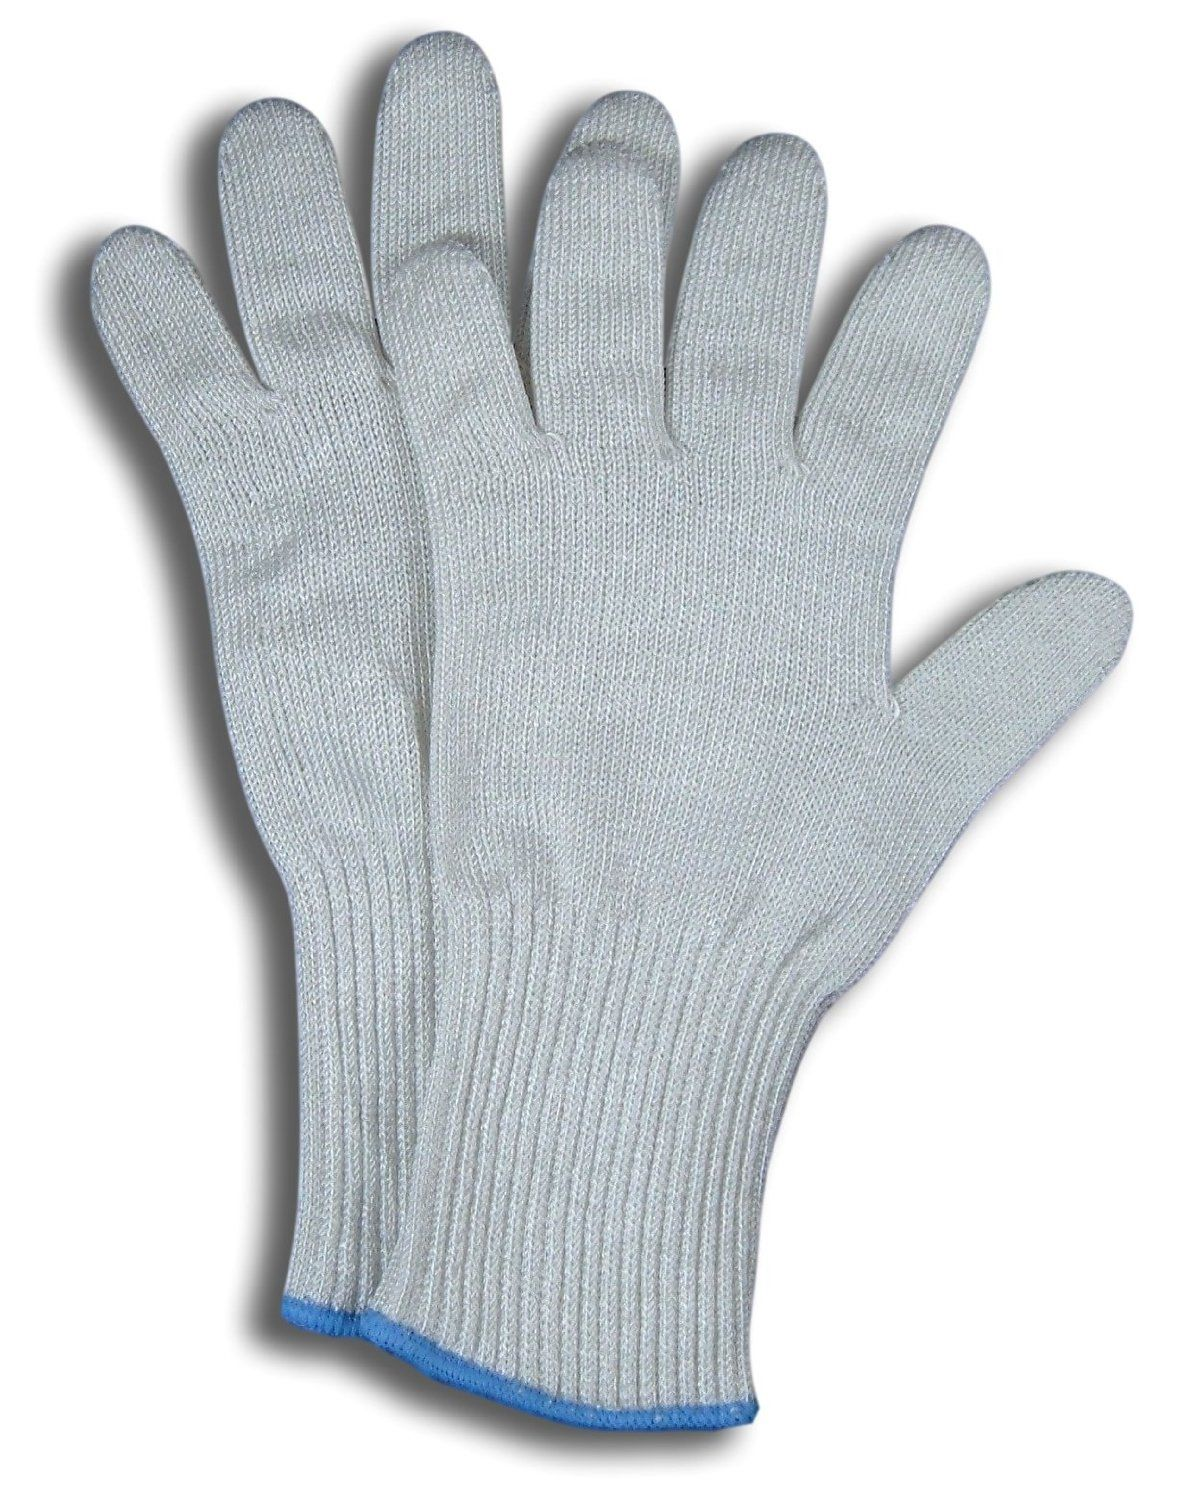 cut gloves for kitchen pictures of cabinets resistant protection against knives